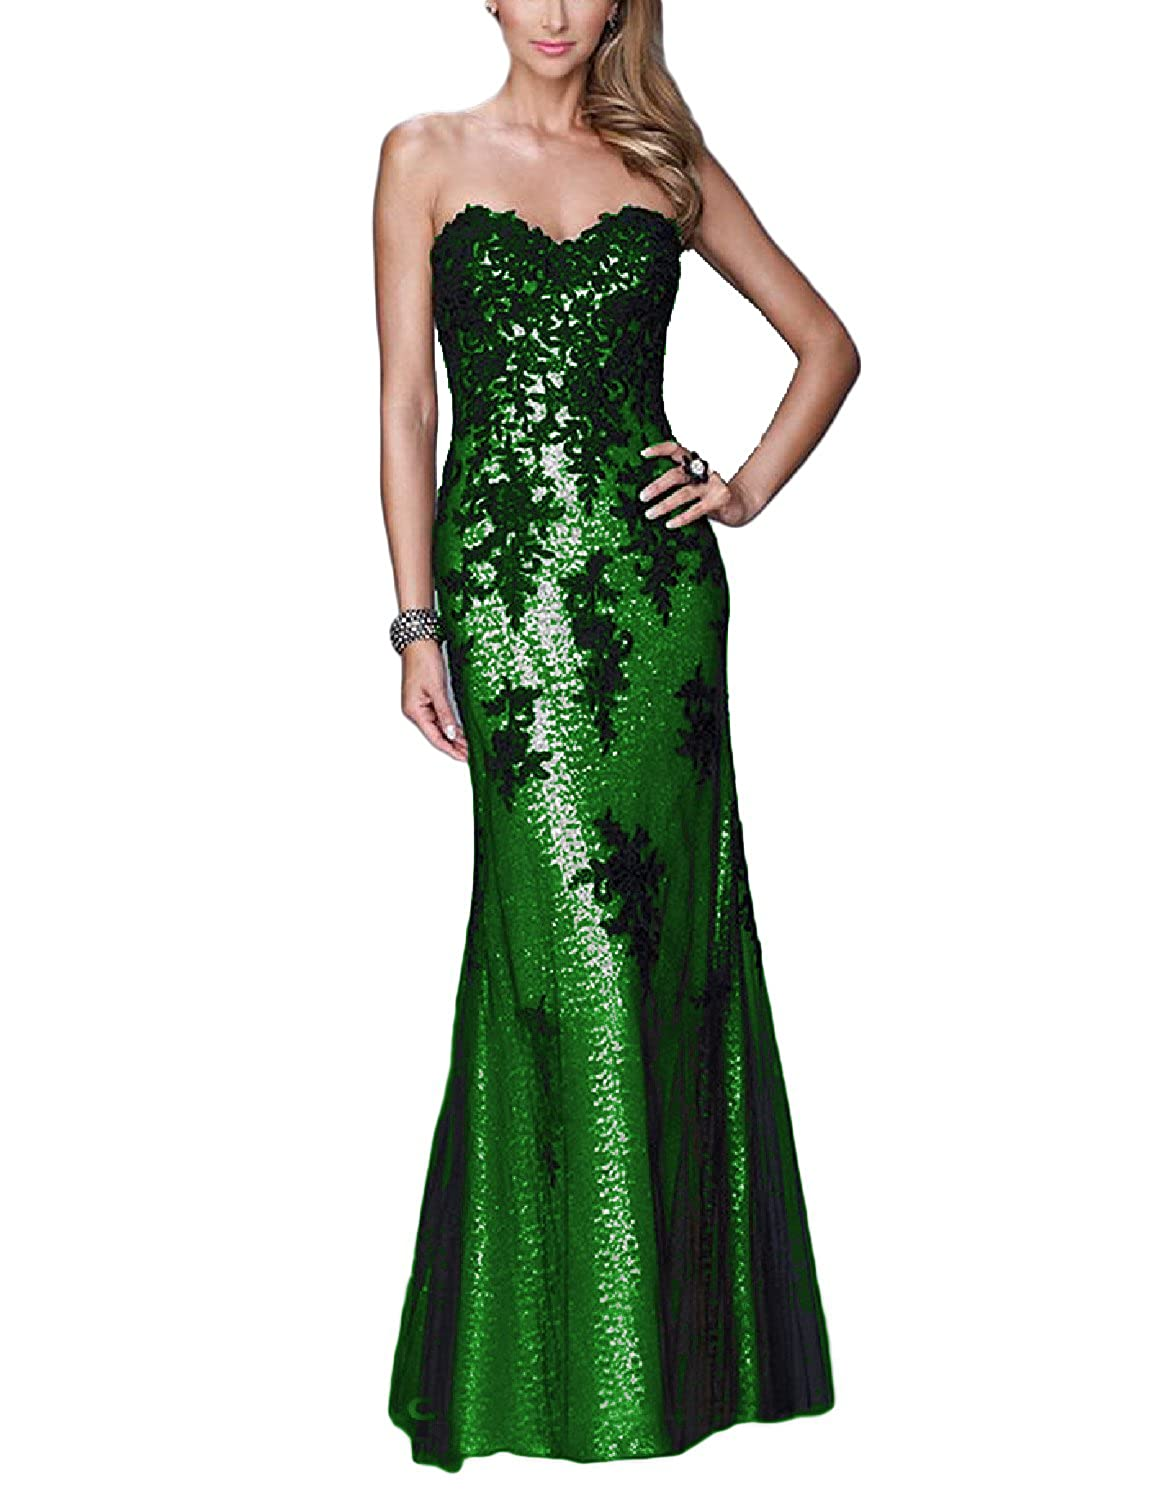 YSMei Womens Mermaid Sequins Evening Dress Strapless Formal Prom Gowns YSM191